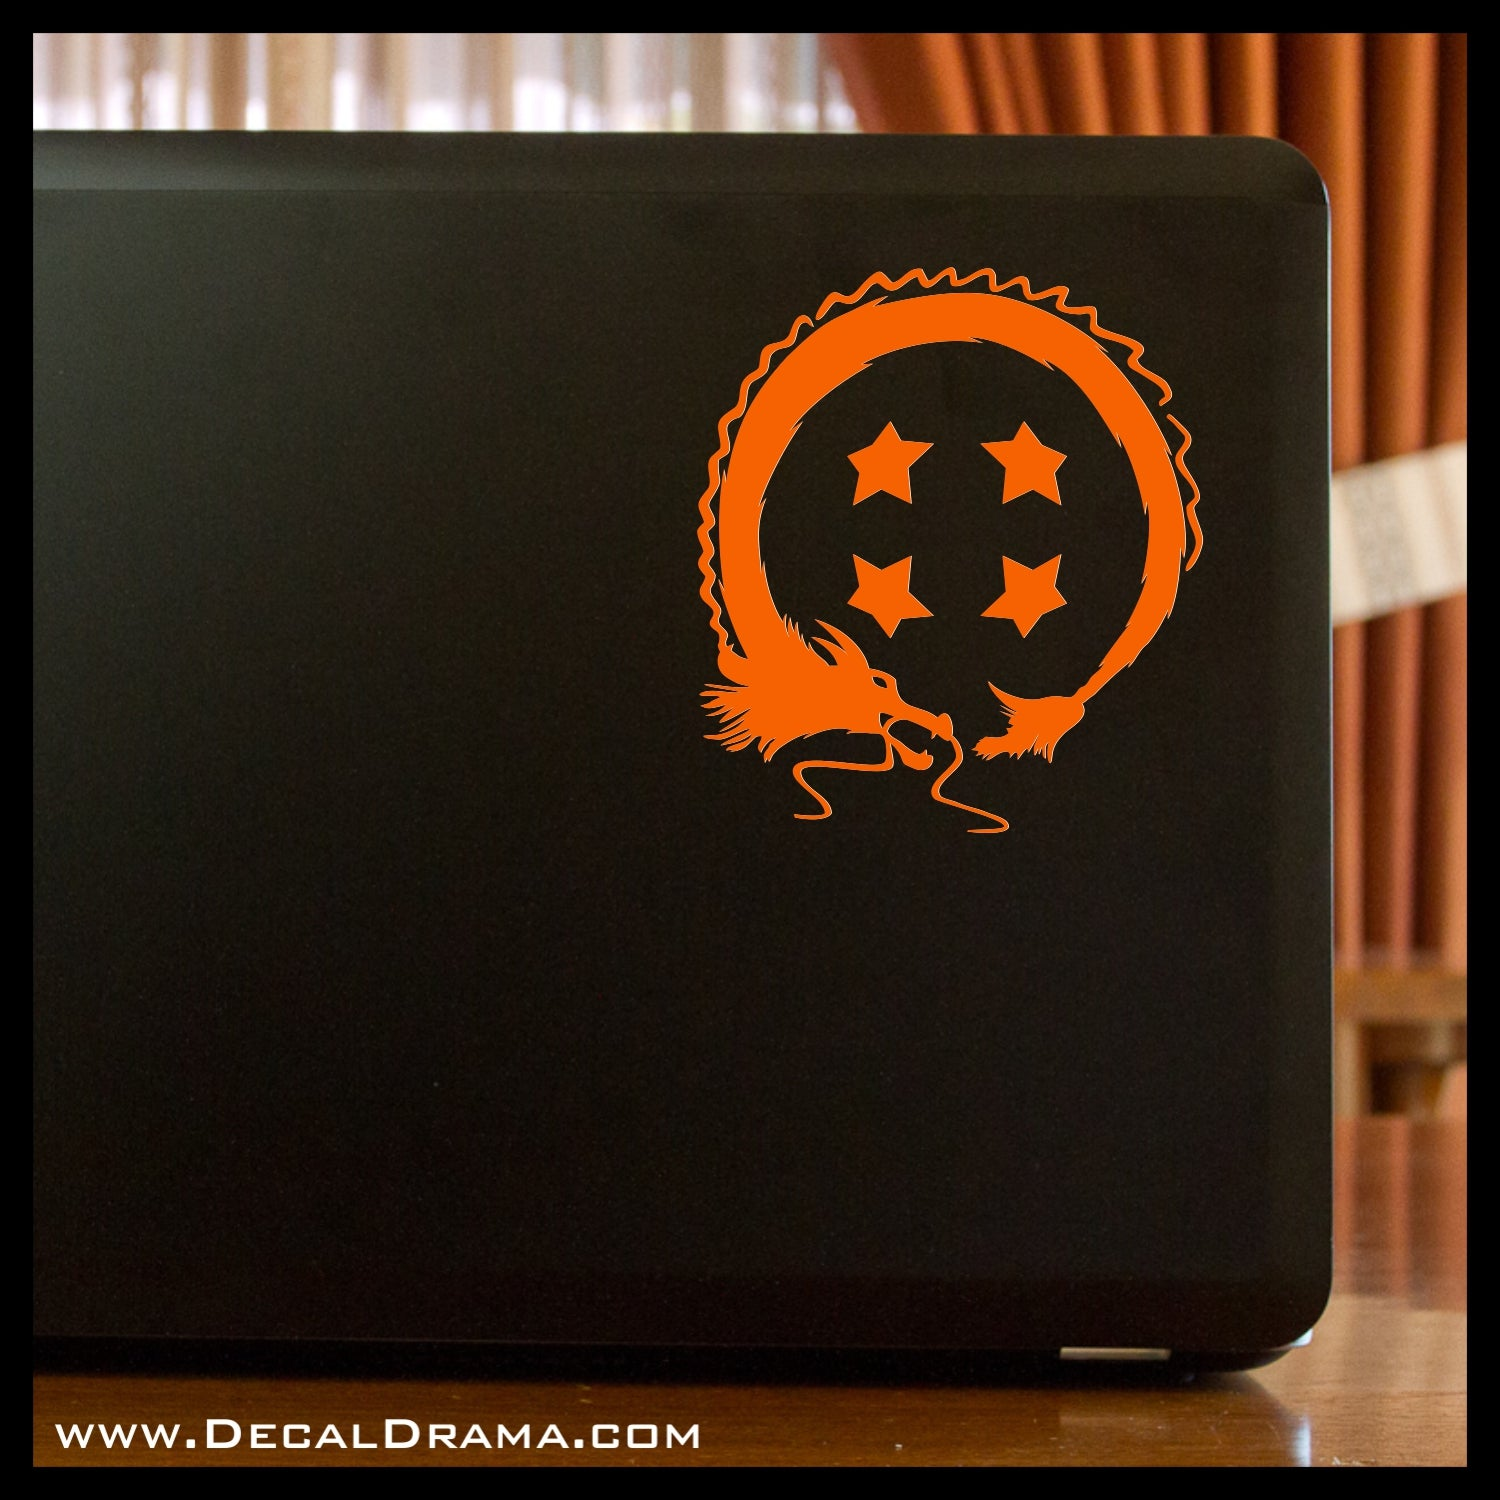 Four-Star Shenron Dragon Ball, Dragon Ball Z-inspired Vinyl Car/Laptop Decal